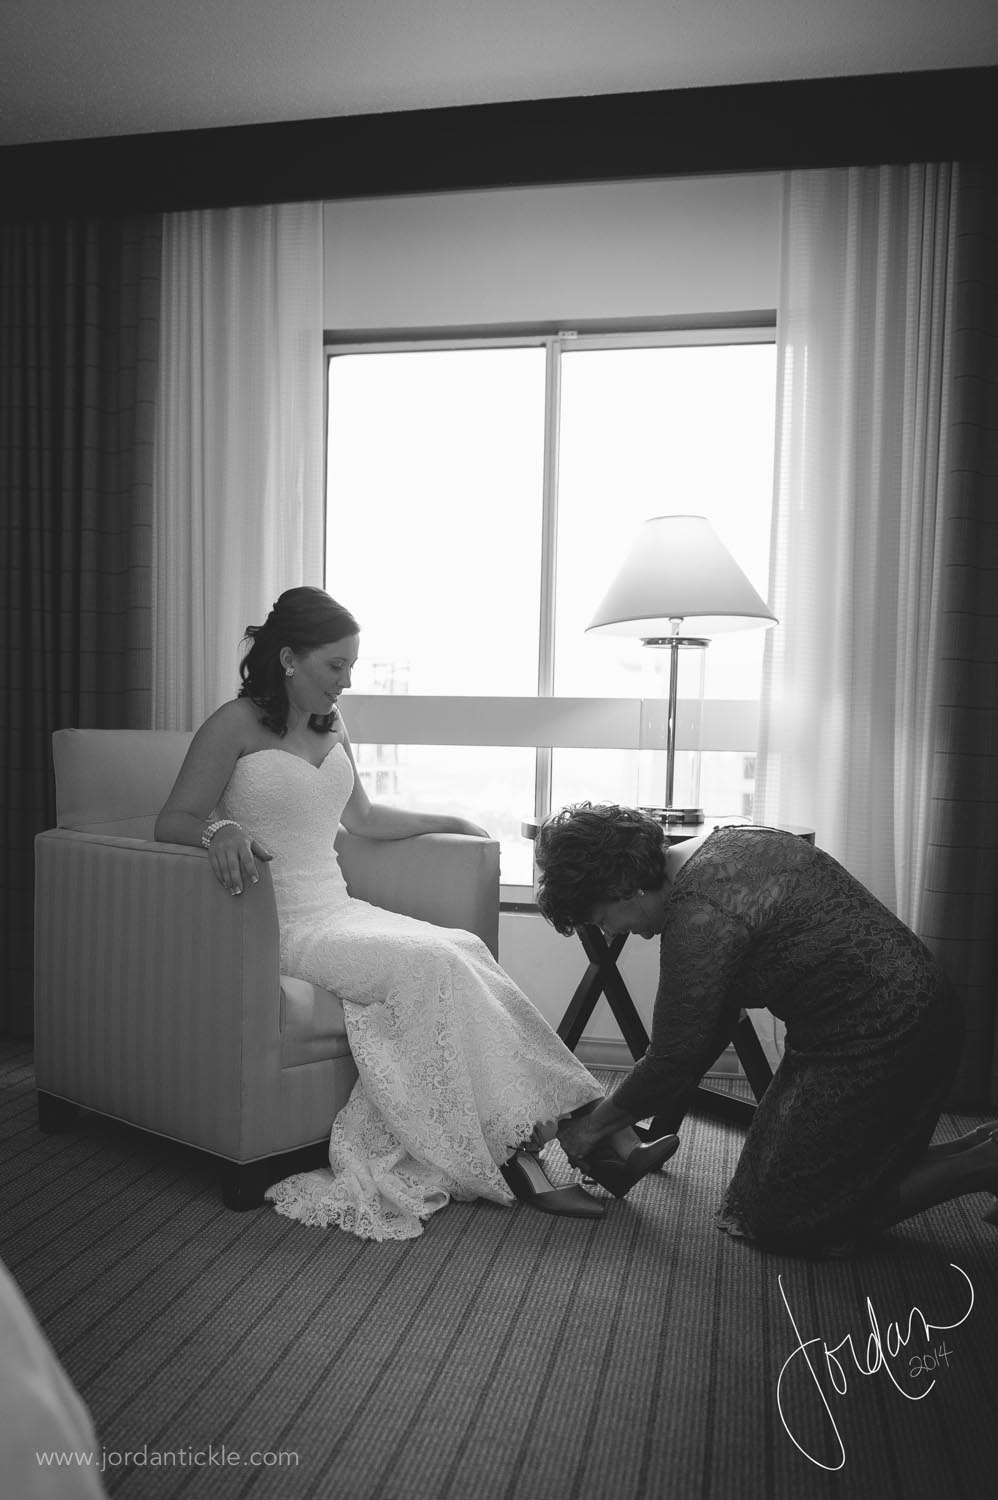 stockroom_downtown_raleigh_nc_wedding_jordan_tickle_photography-6.jpg